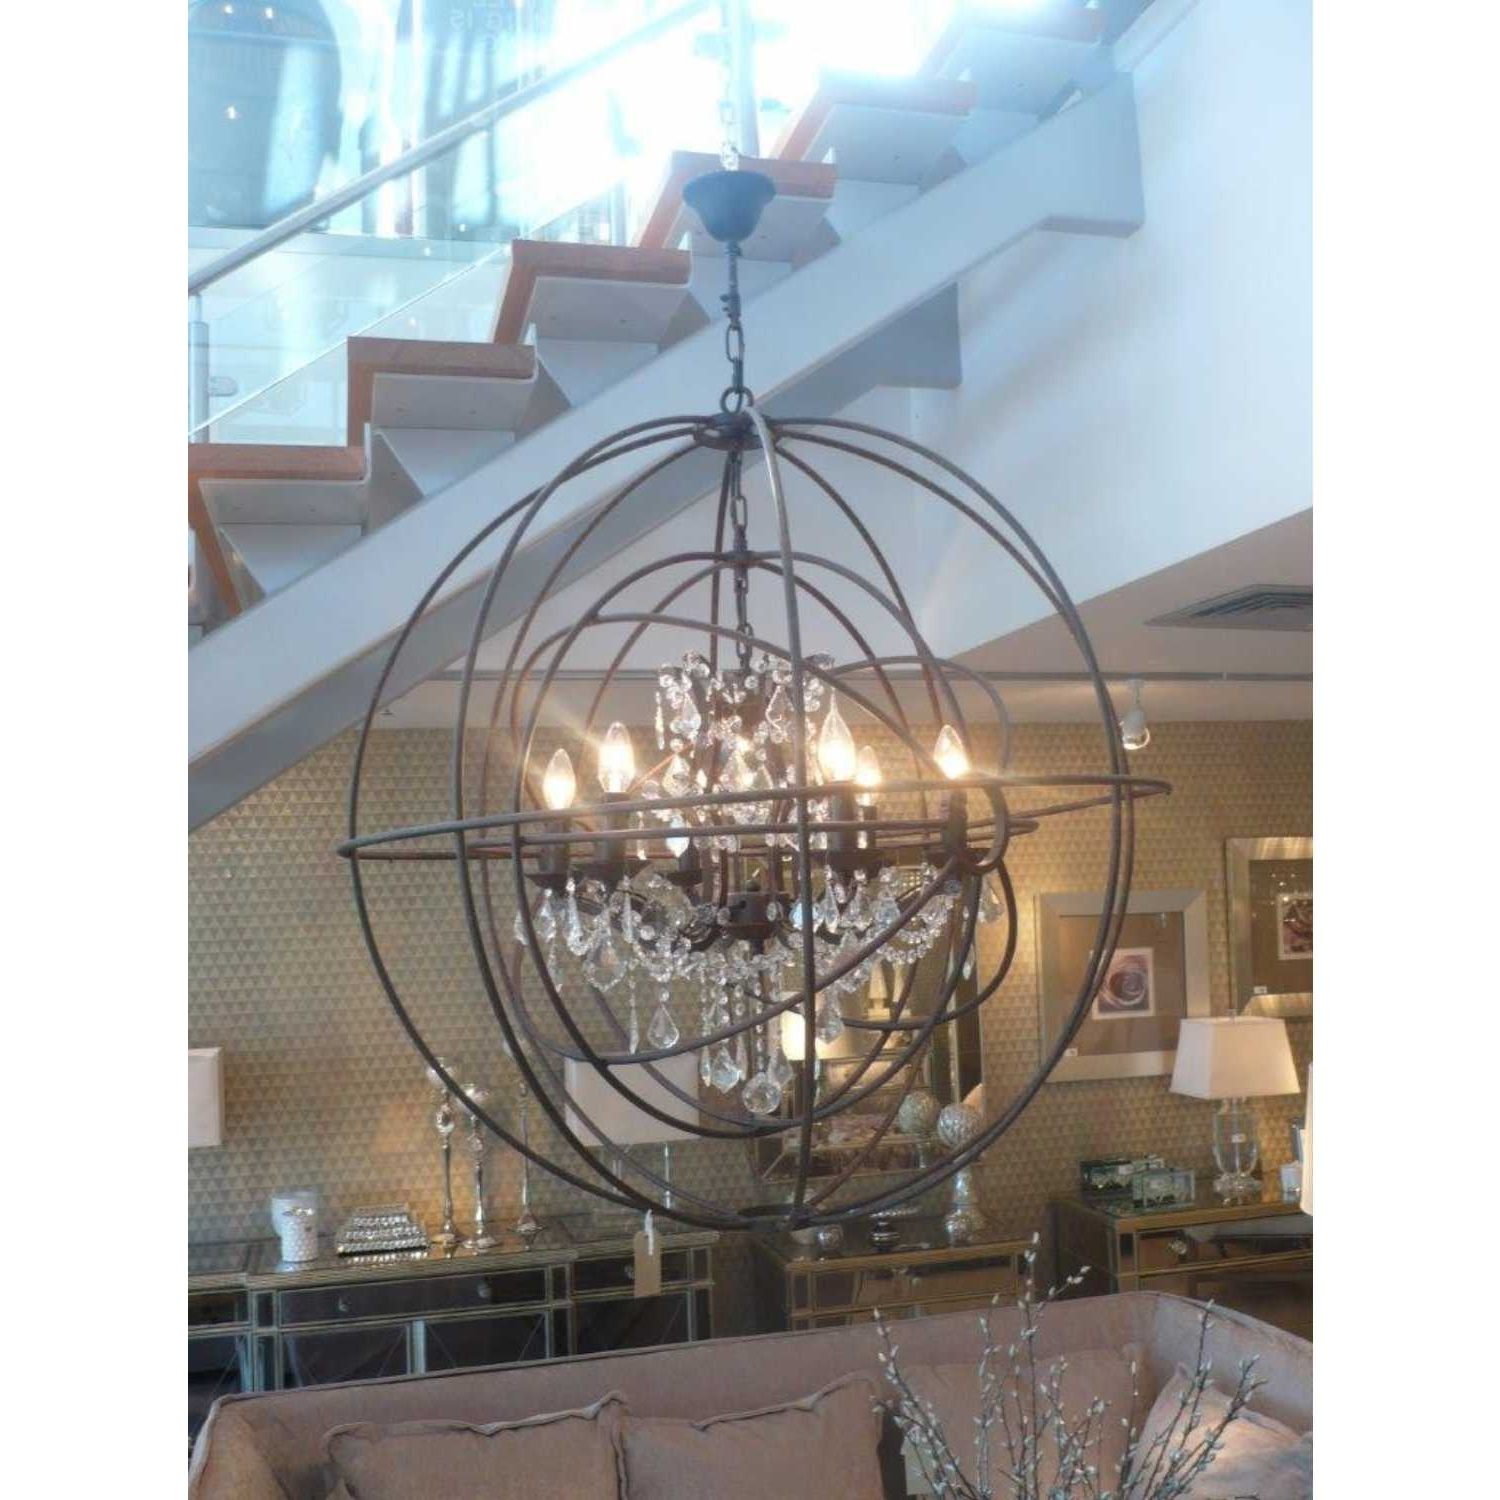 Metal Sphere Chandelier Round Ceiling Light With Glass Crystals Pertaining To Recent Metal Sphere Chandelier (View 2 of 20)